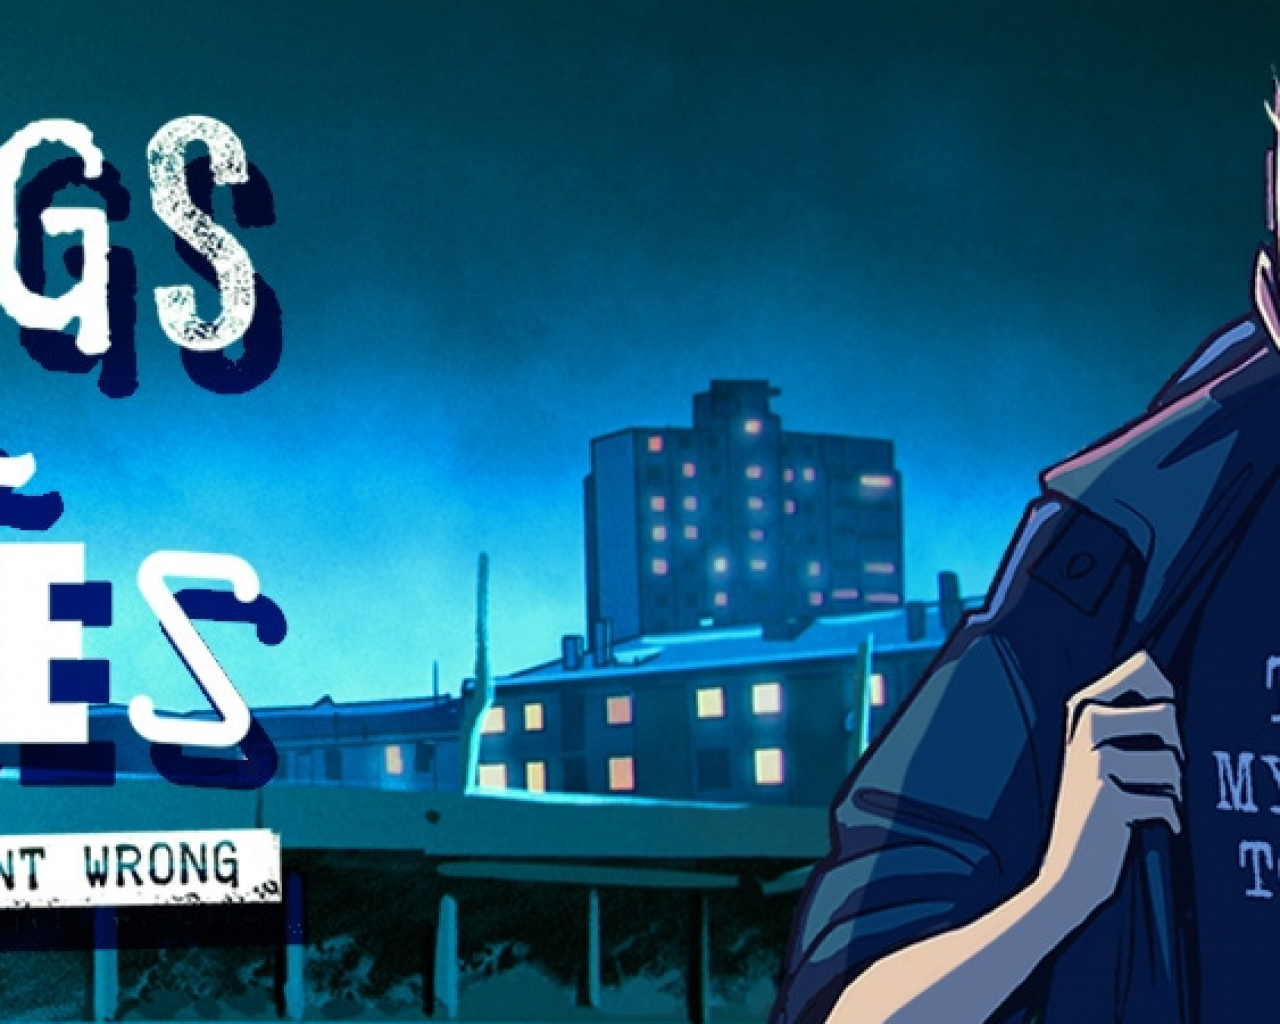 Poster Image for Drugs & Wires